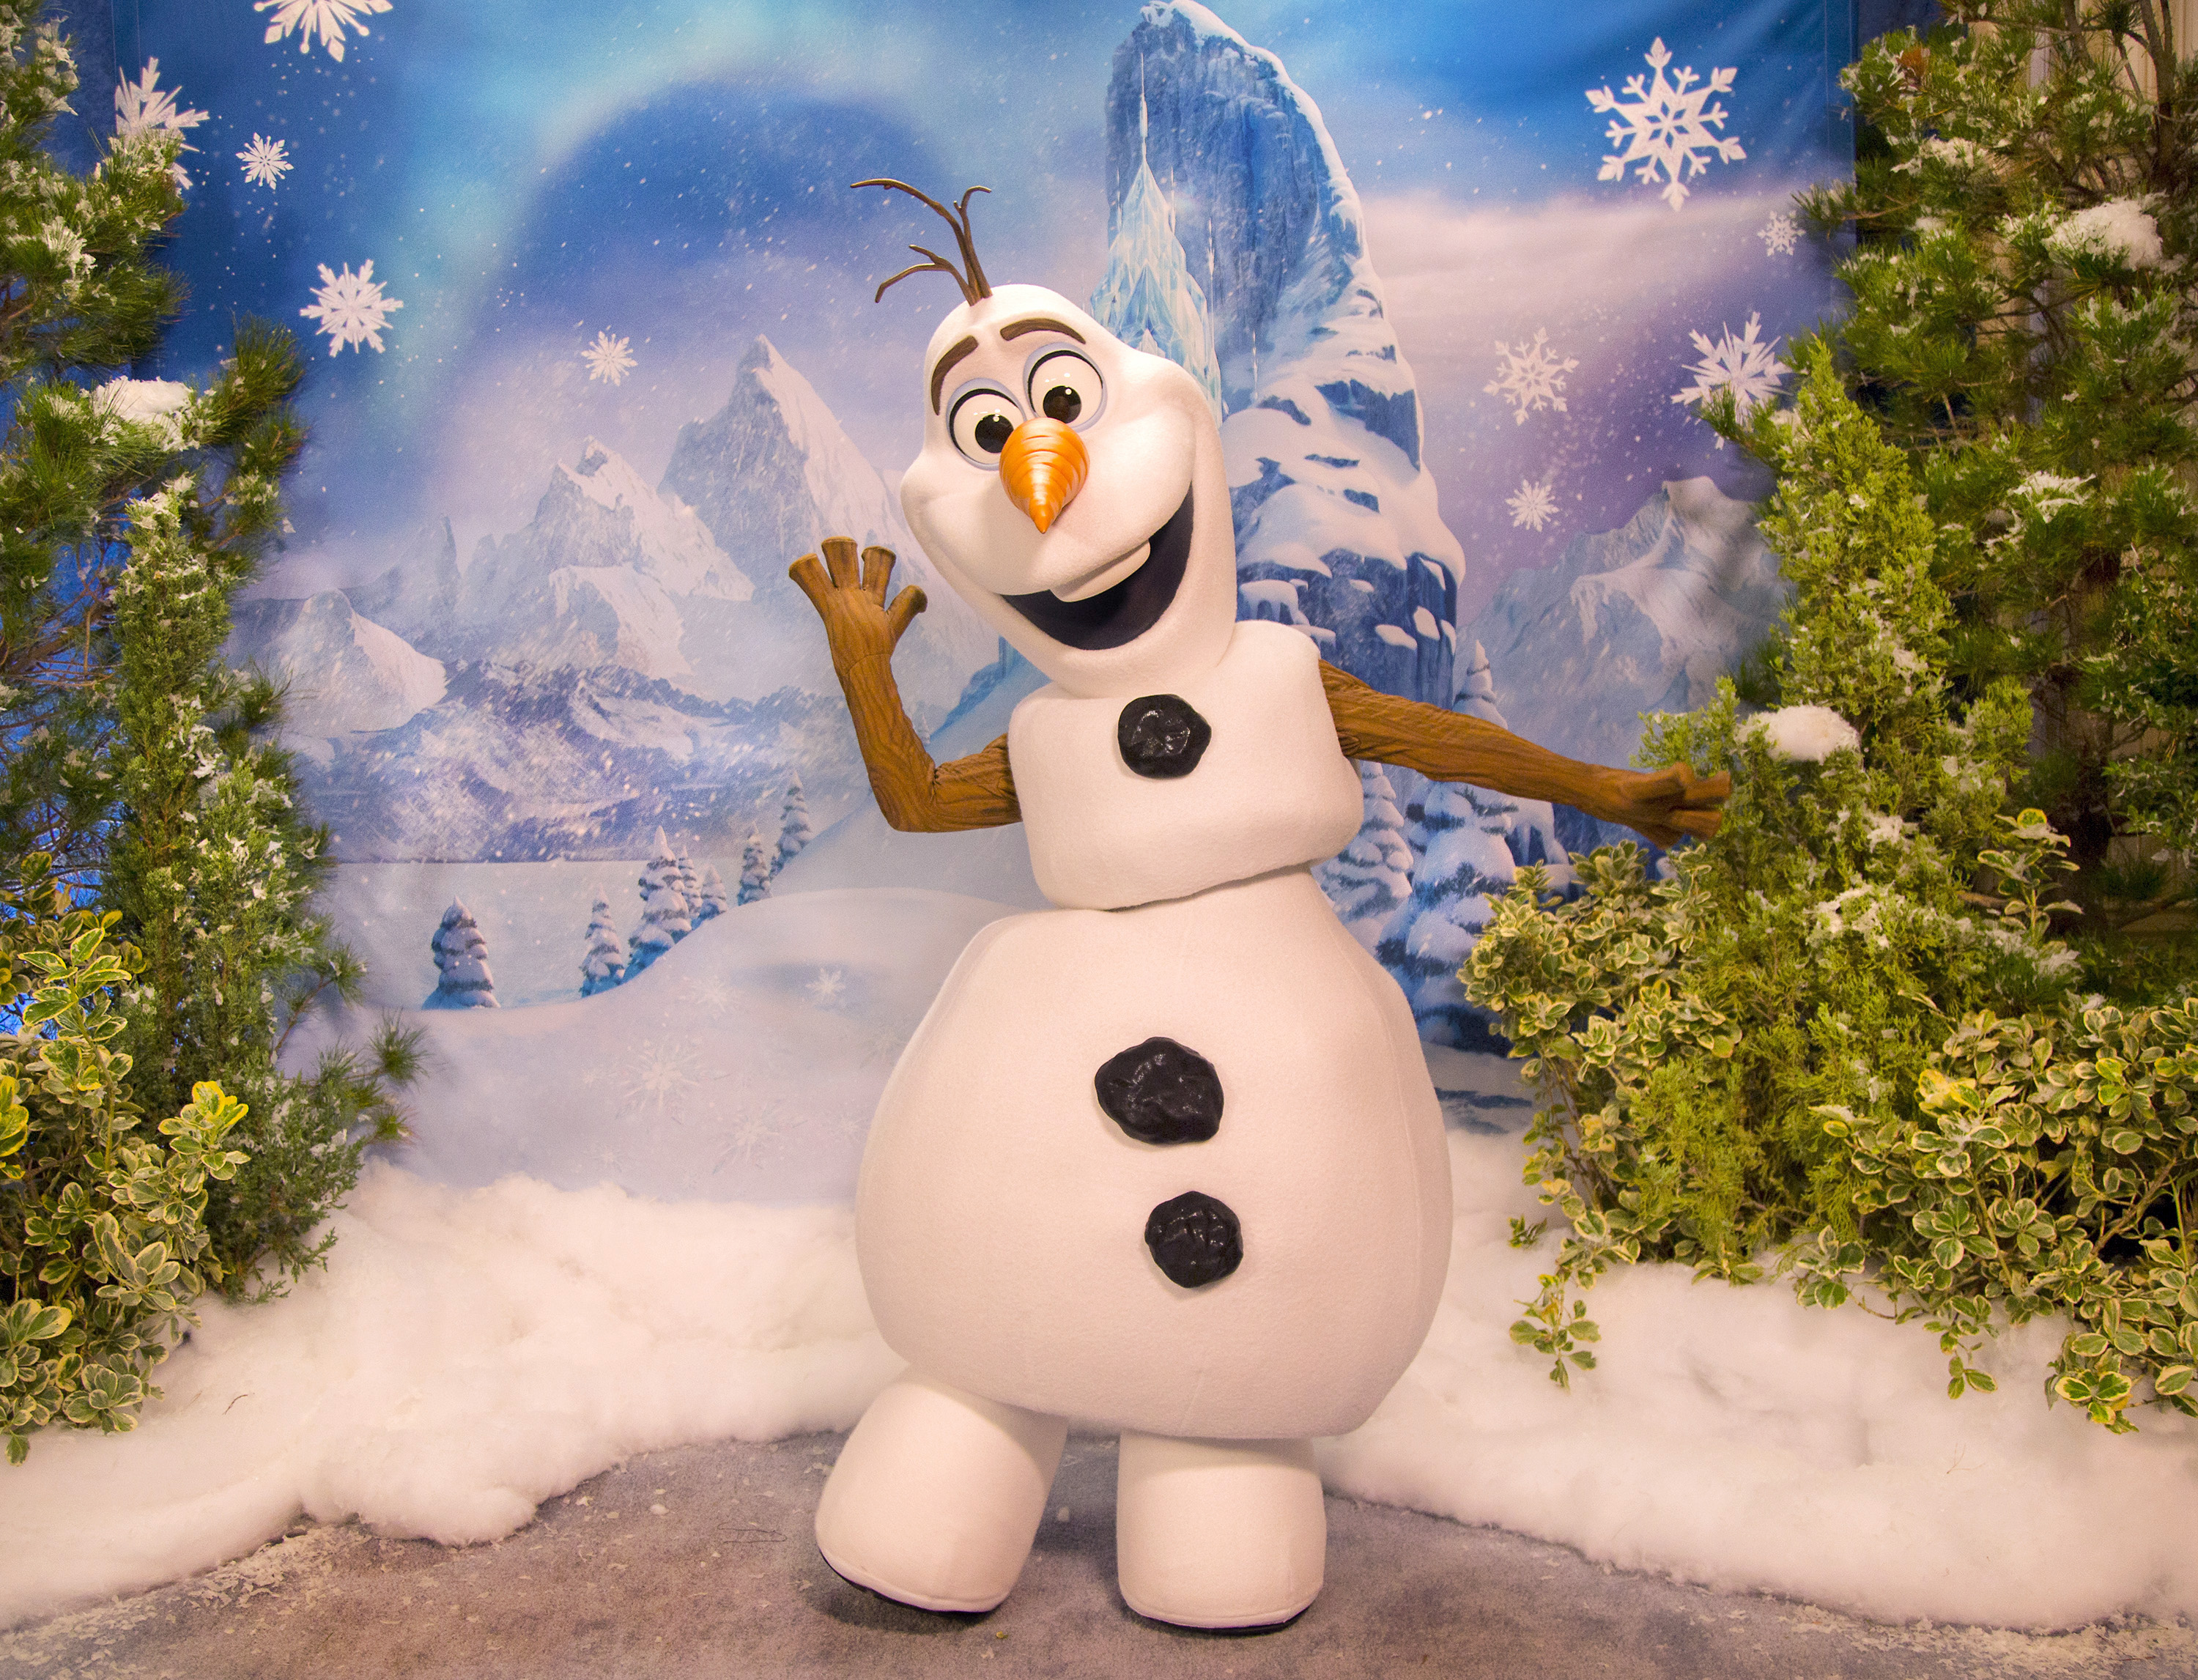 olaf-frozen-fun-disneyland | WDW Daily News